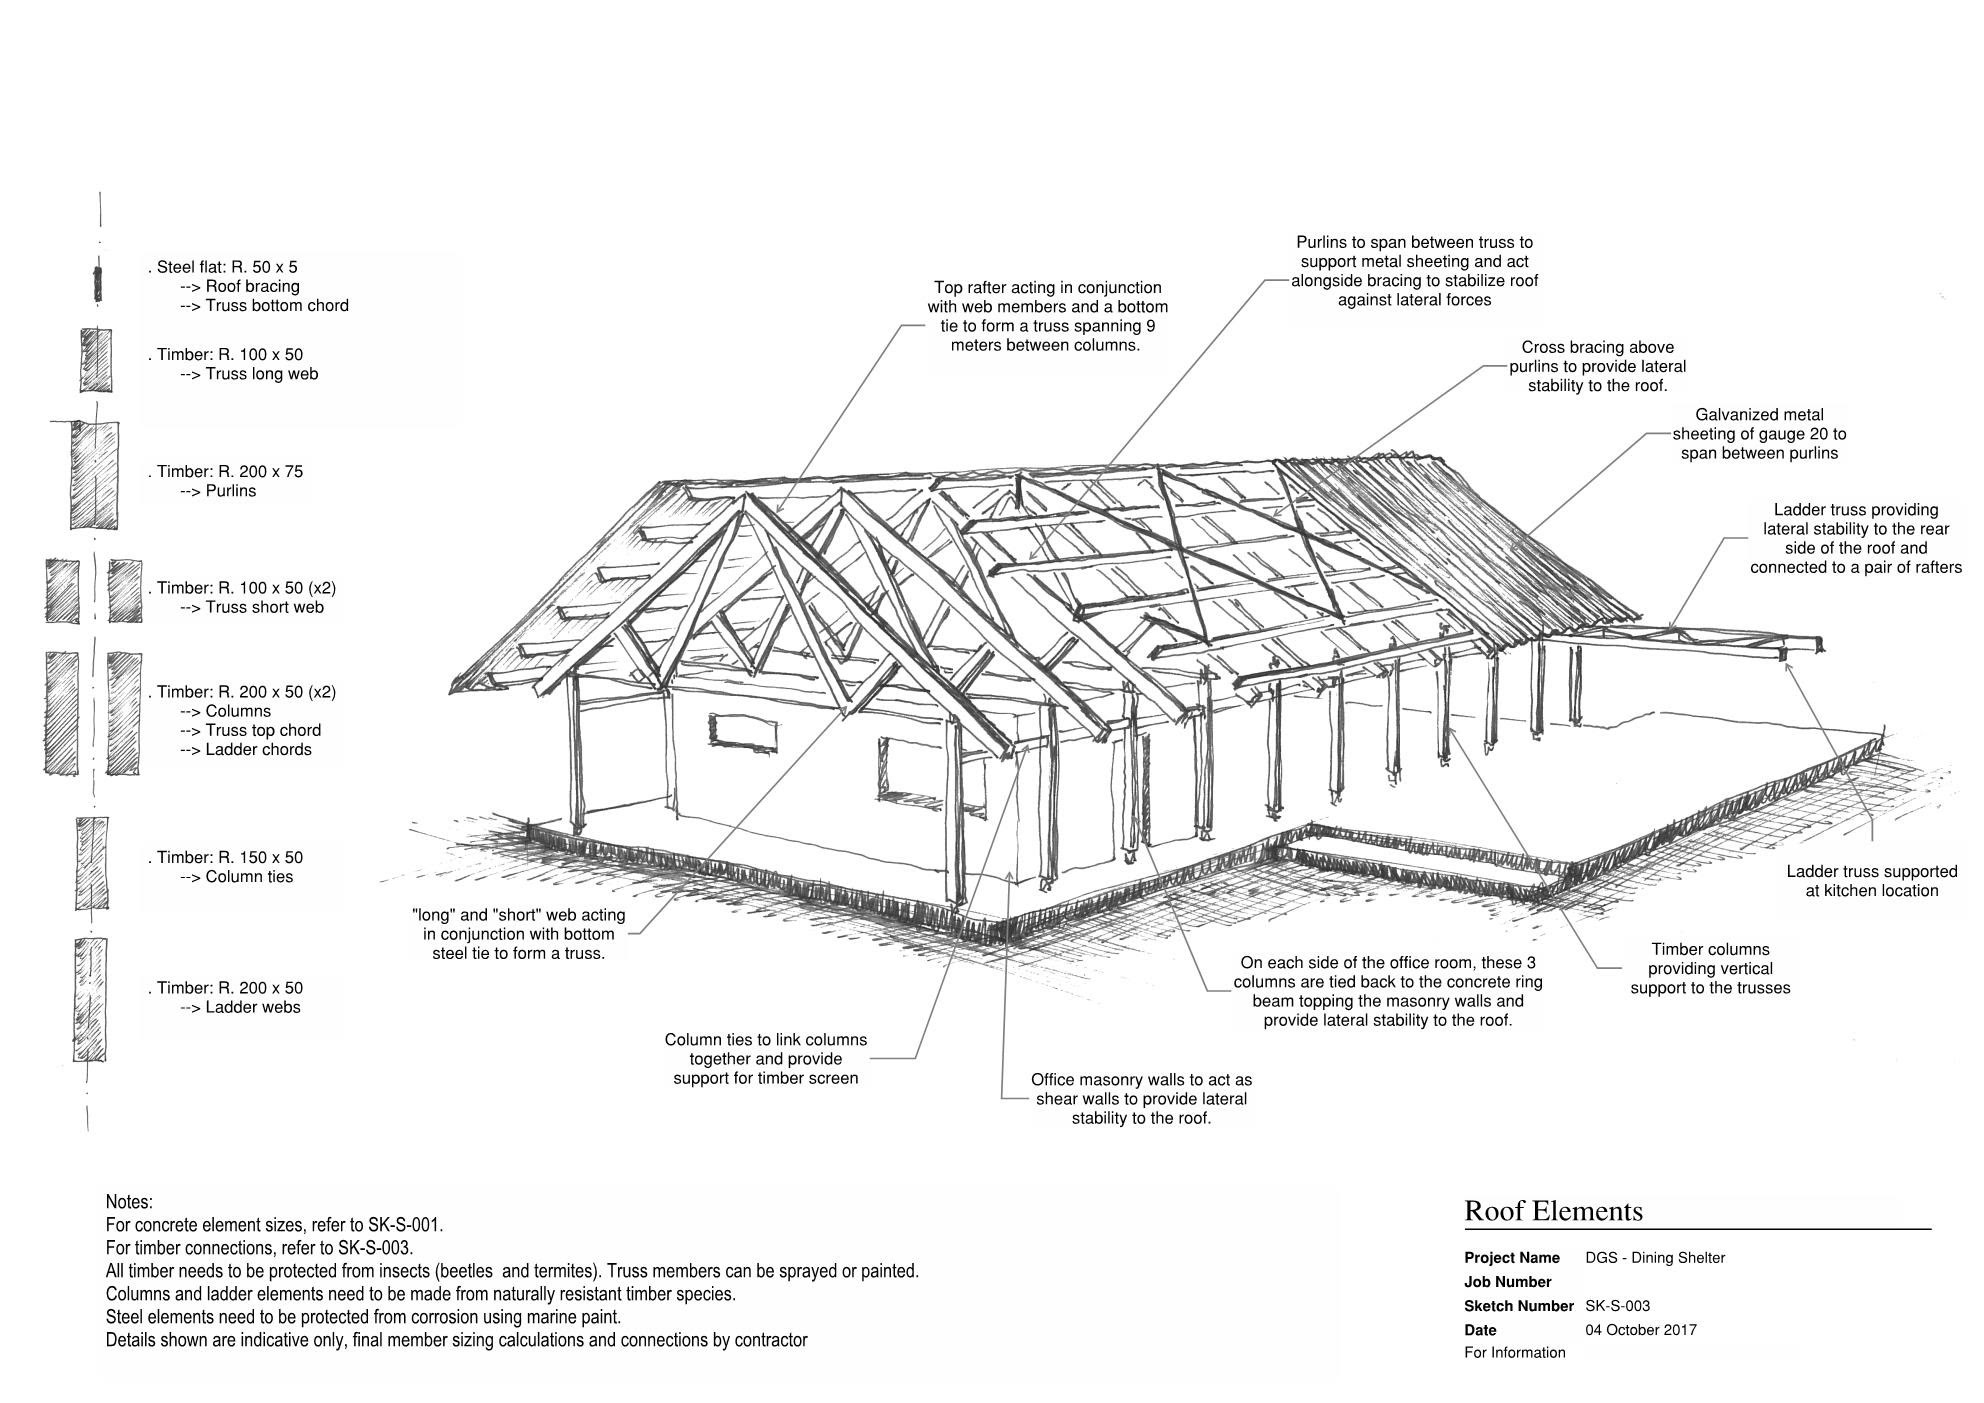 Destiny Garden School charity project engineering sketch construction shelter timber